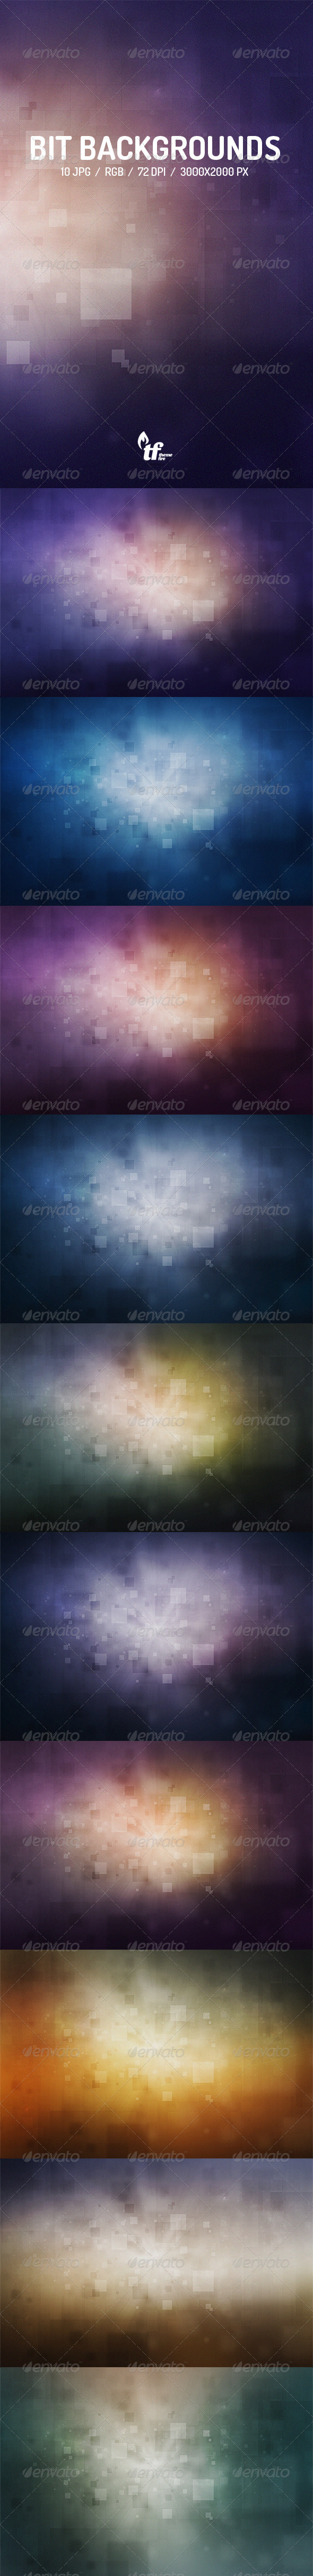 GraphicRiver Bit Backgrounds 7582475